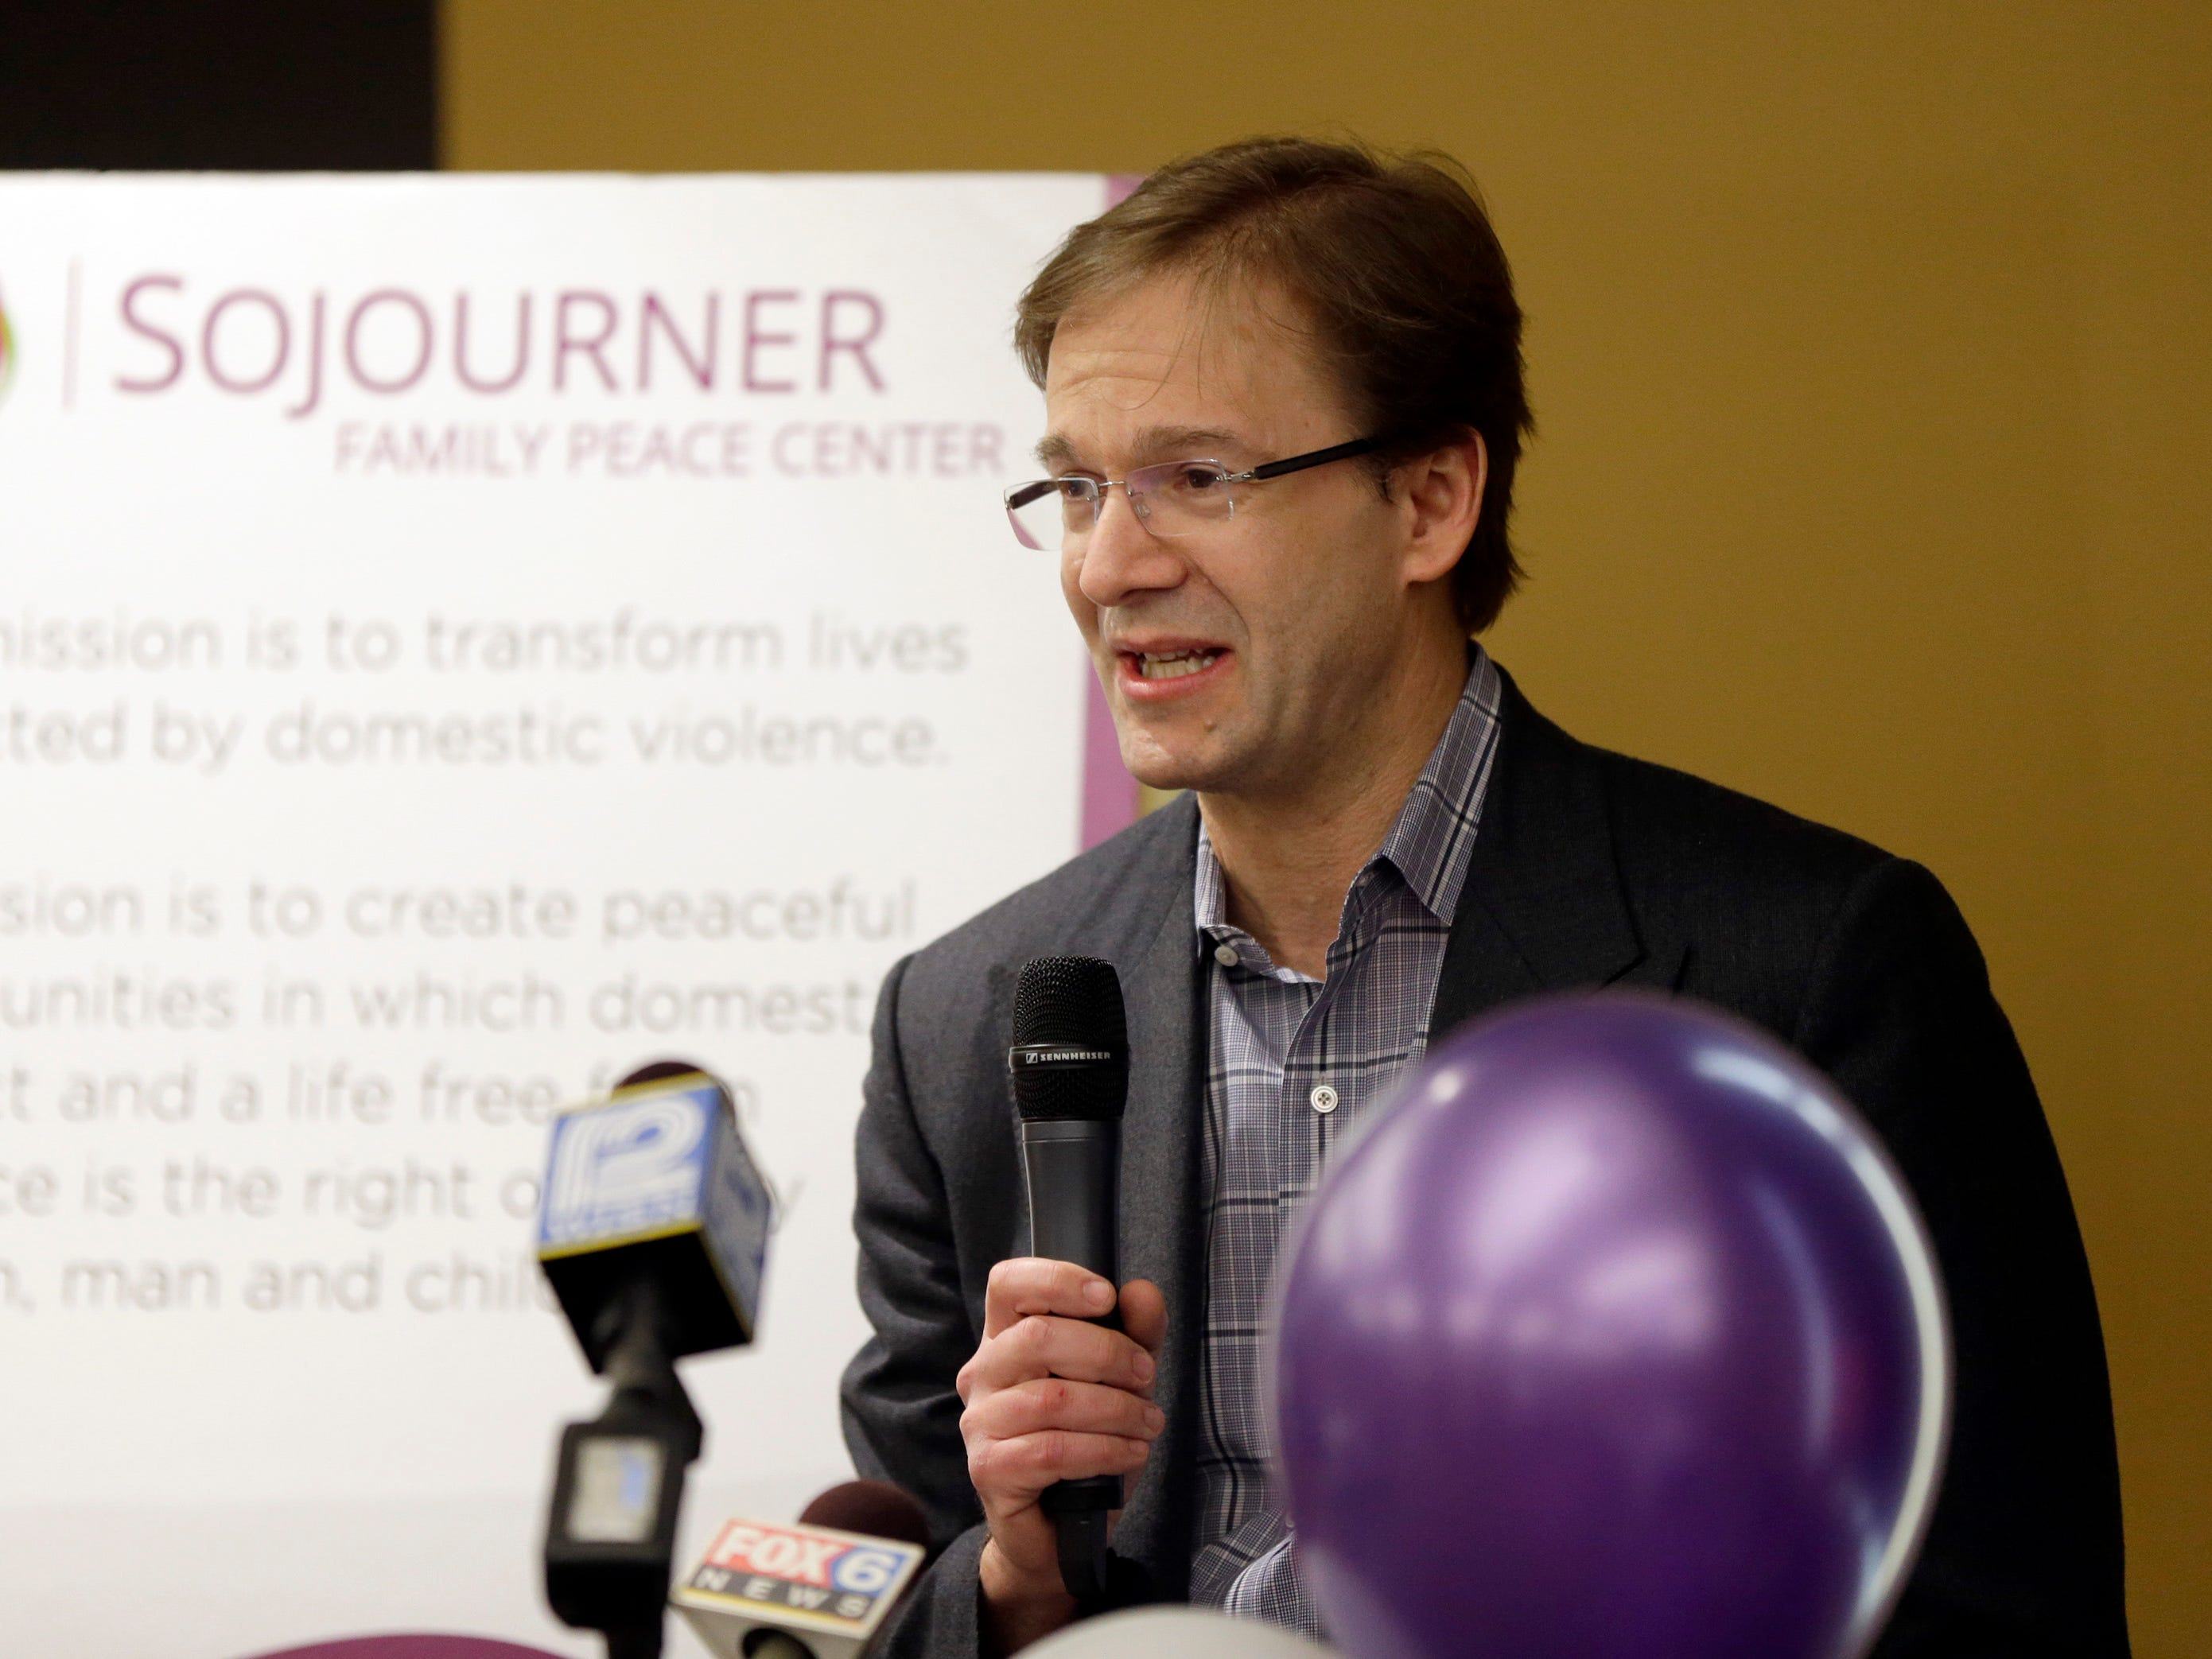 2016: Milwaukee County Executive Chris Abele speaks during the opening of the new Sojouner Family Peace Center at 619 W. Walnut St. in Milwaukee. City leaders, funders, partners and residents got their first comprehensive tour of the new facility. The building will centralize services for domestic violence victims and their children. Spanning 70,000 square feet, it's the largest family justice center operating in the country and is among a handful that use a model of providing shelter, child protection and core health services all in one place.